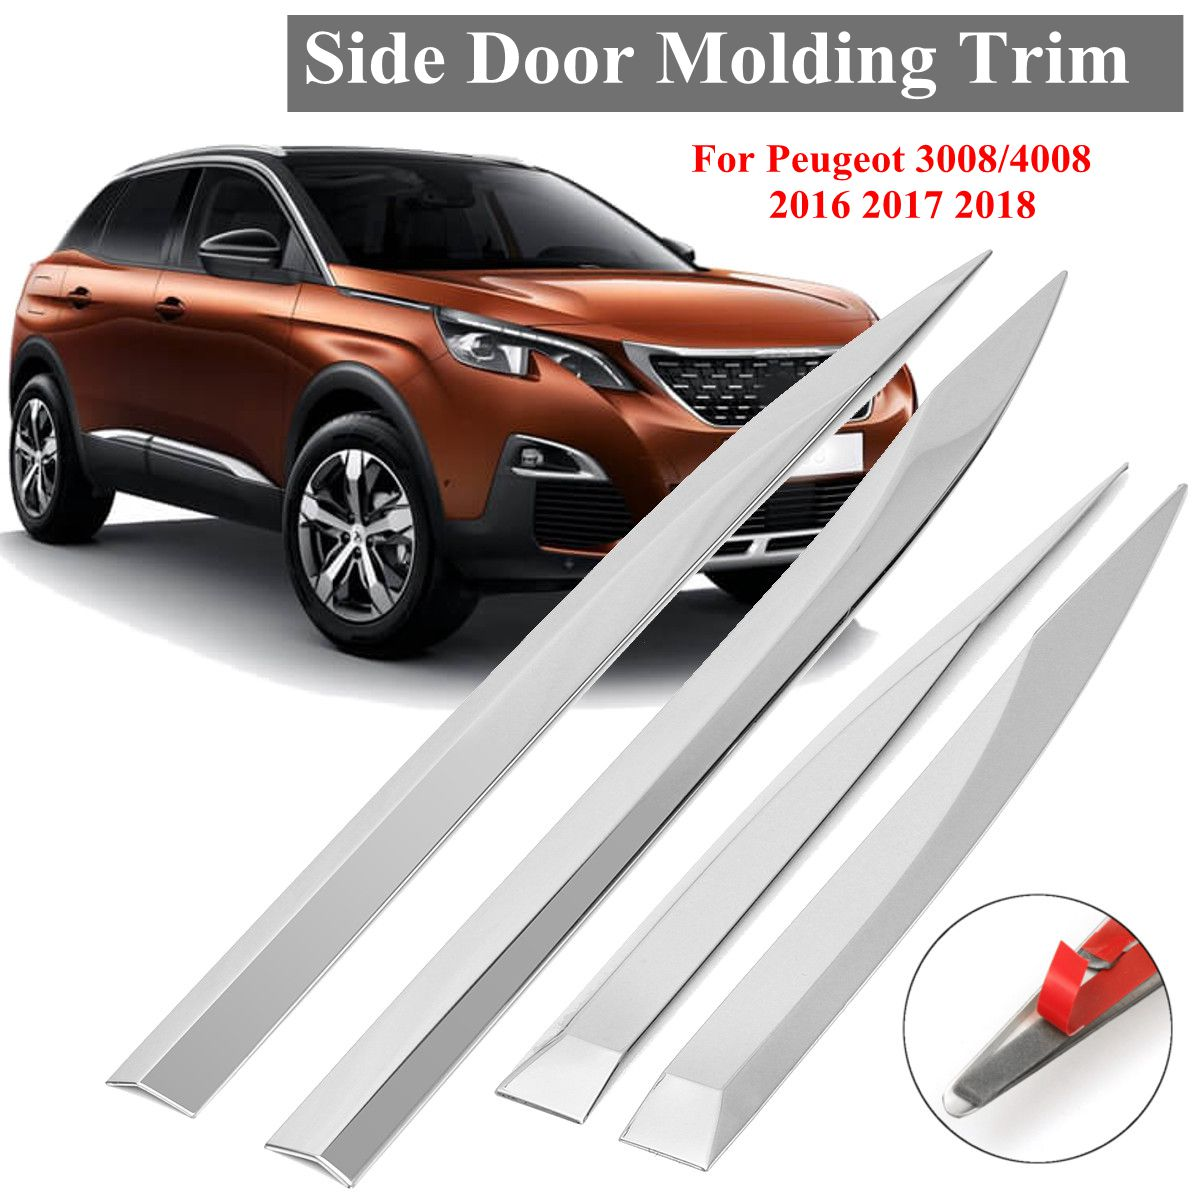 4pcs/Set Door Body Chrome Side Molding Protector Trim Stainless Steel Sticker Strips For Peugeot 3008 4008 2016-2018 Car Styling stainless steel cover detector side door body trim sticks strips molding 4pcs for peugeot 3008gt 4008 2016 2017 2018 car styling